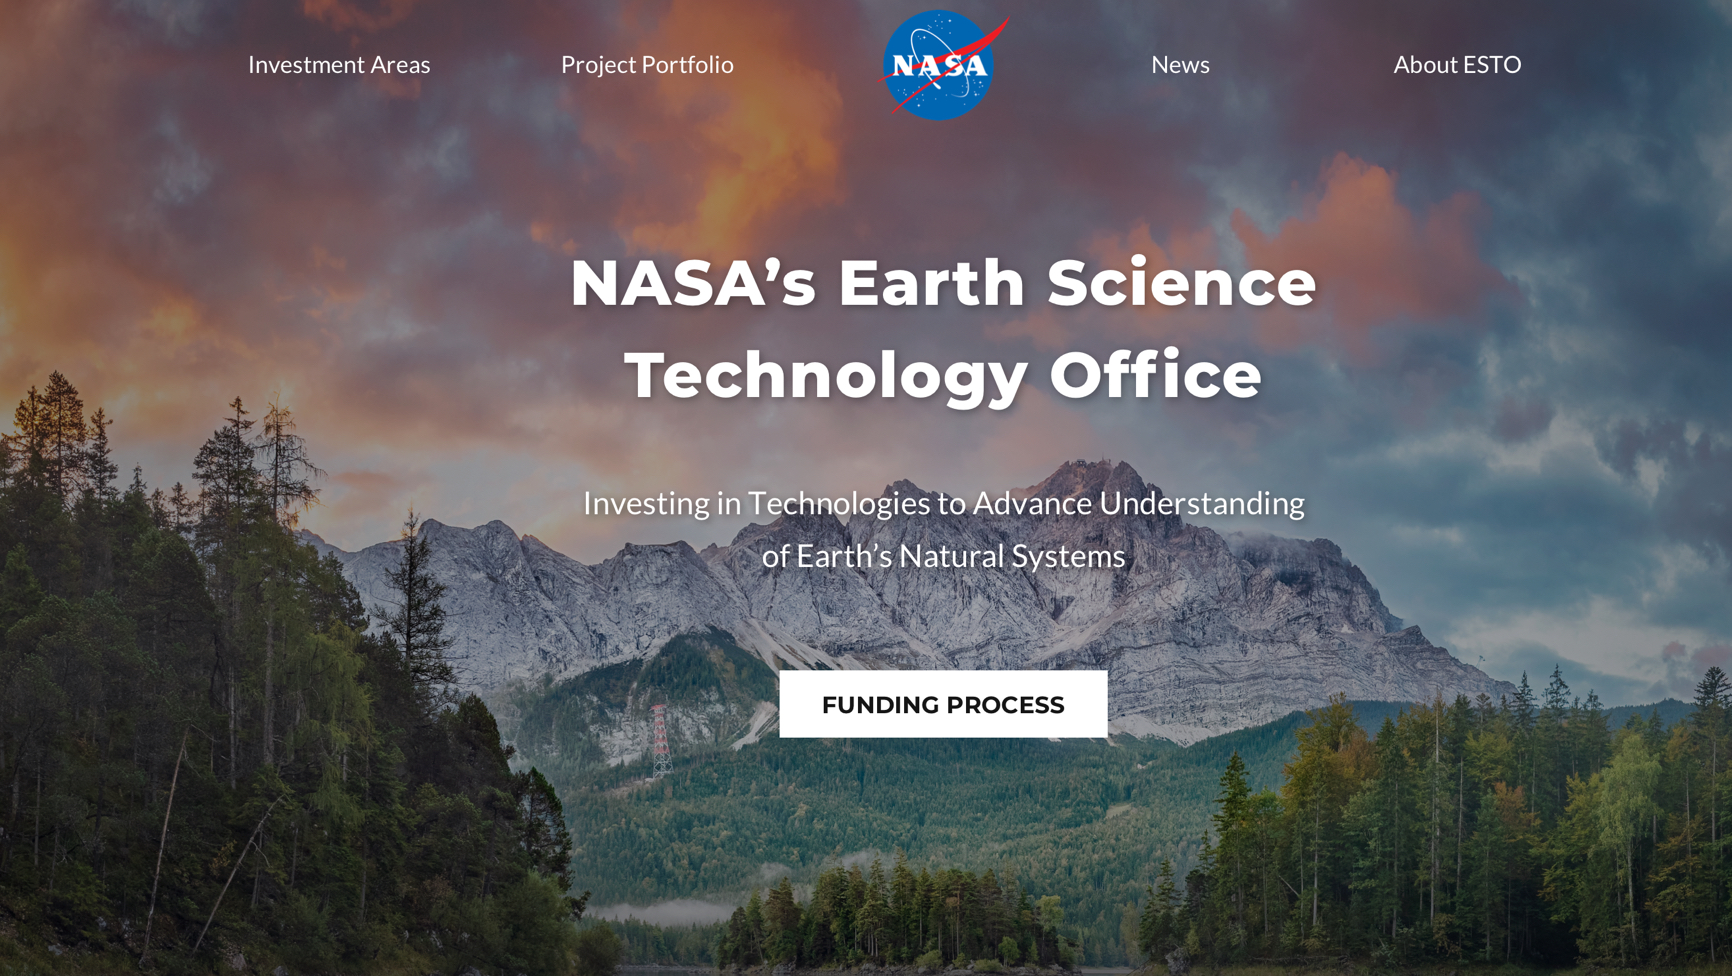 NASA esto website homepage